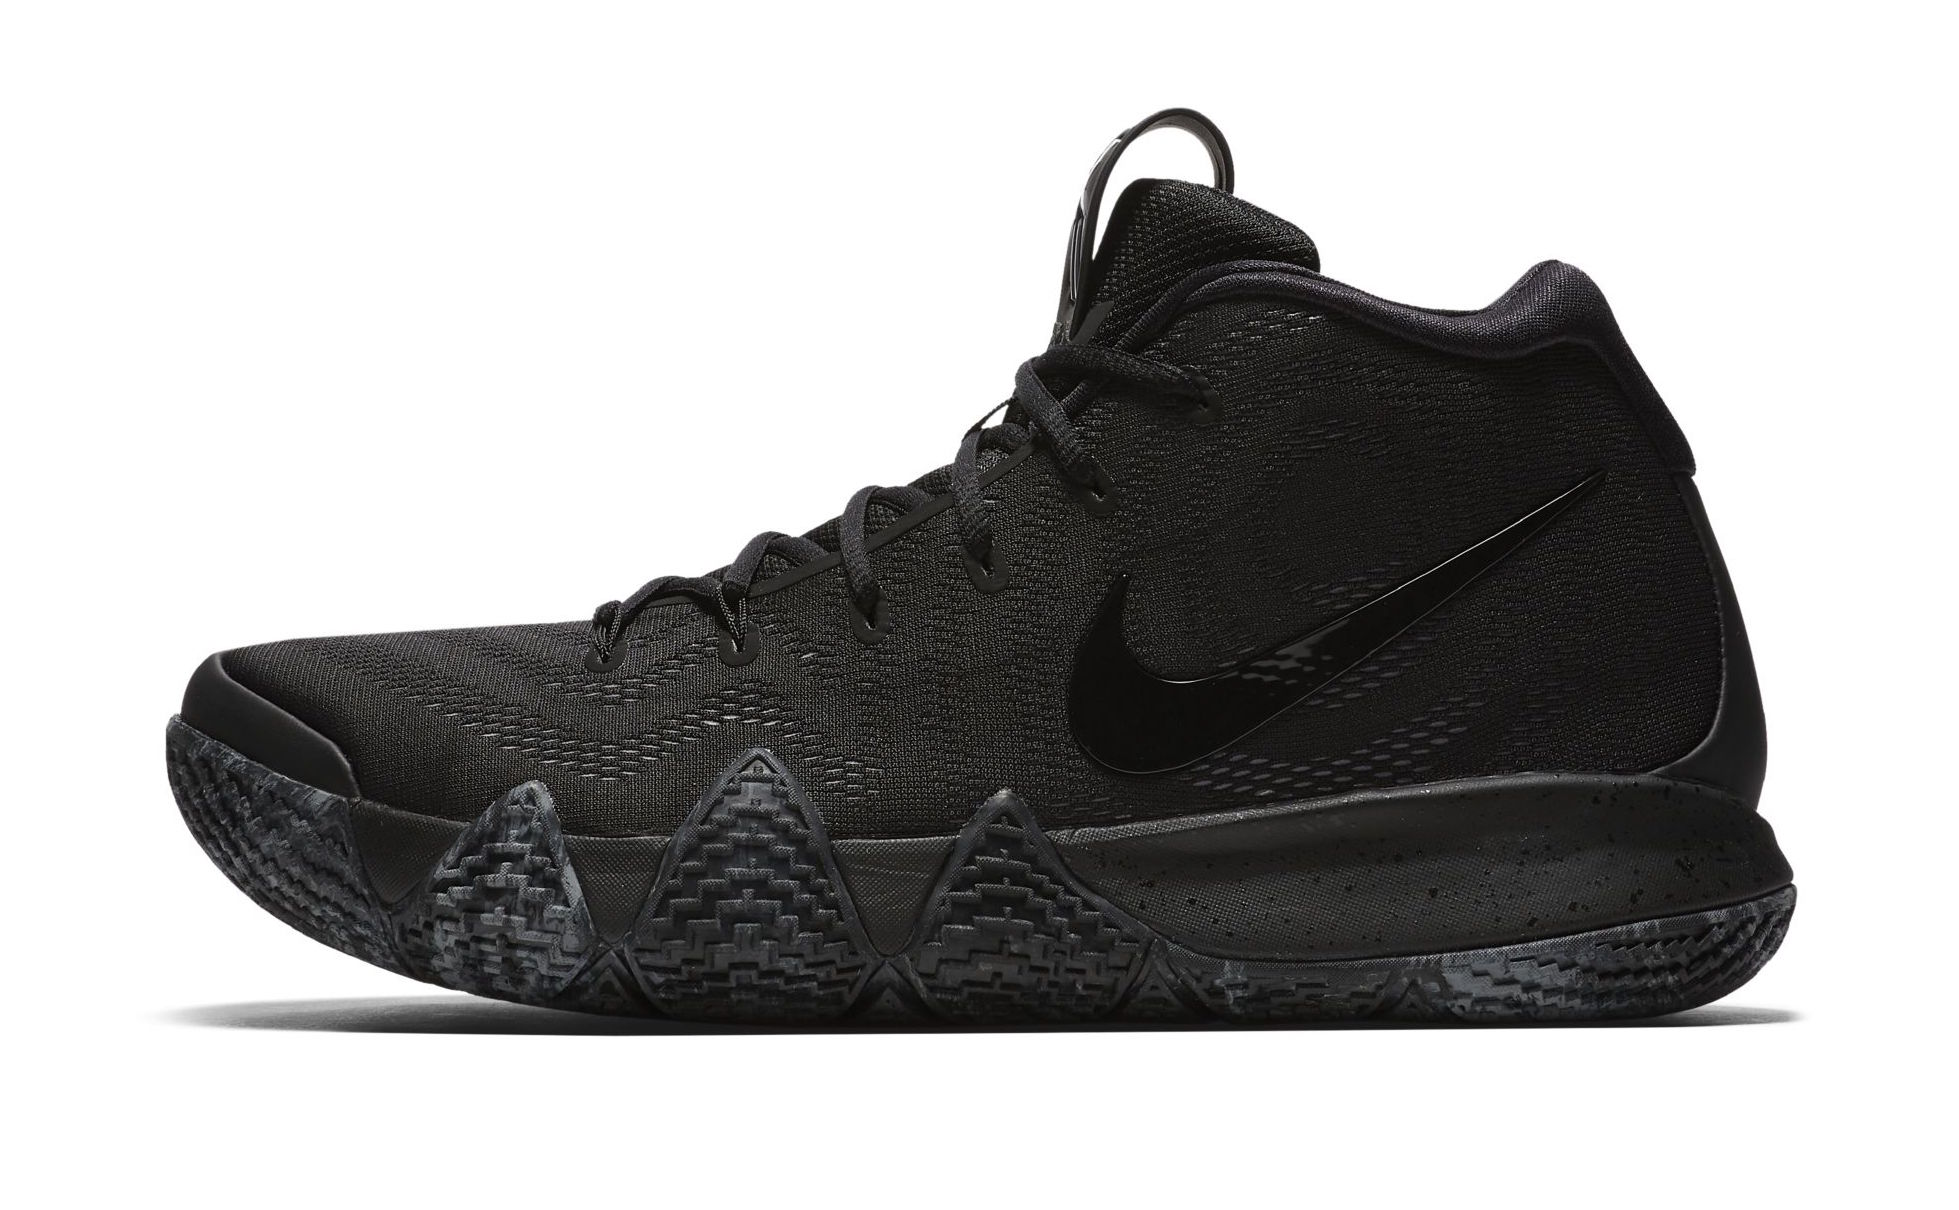 reputable site 46ca9 f316e Expect the Nike Kyrie 4 'Triple Black' Next Month - WearTesters